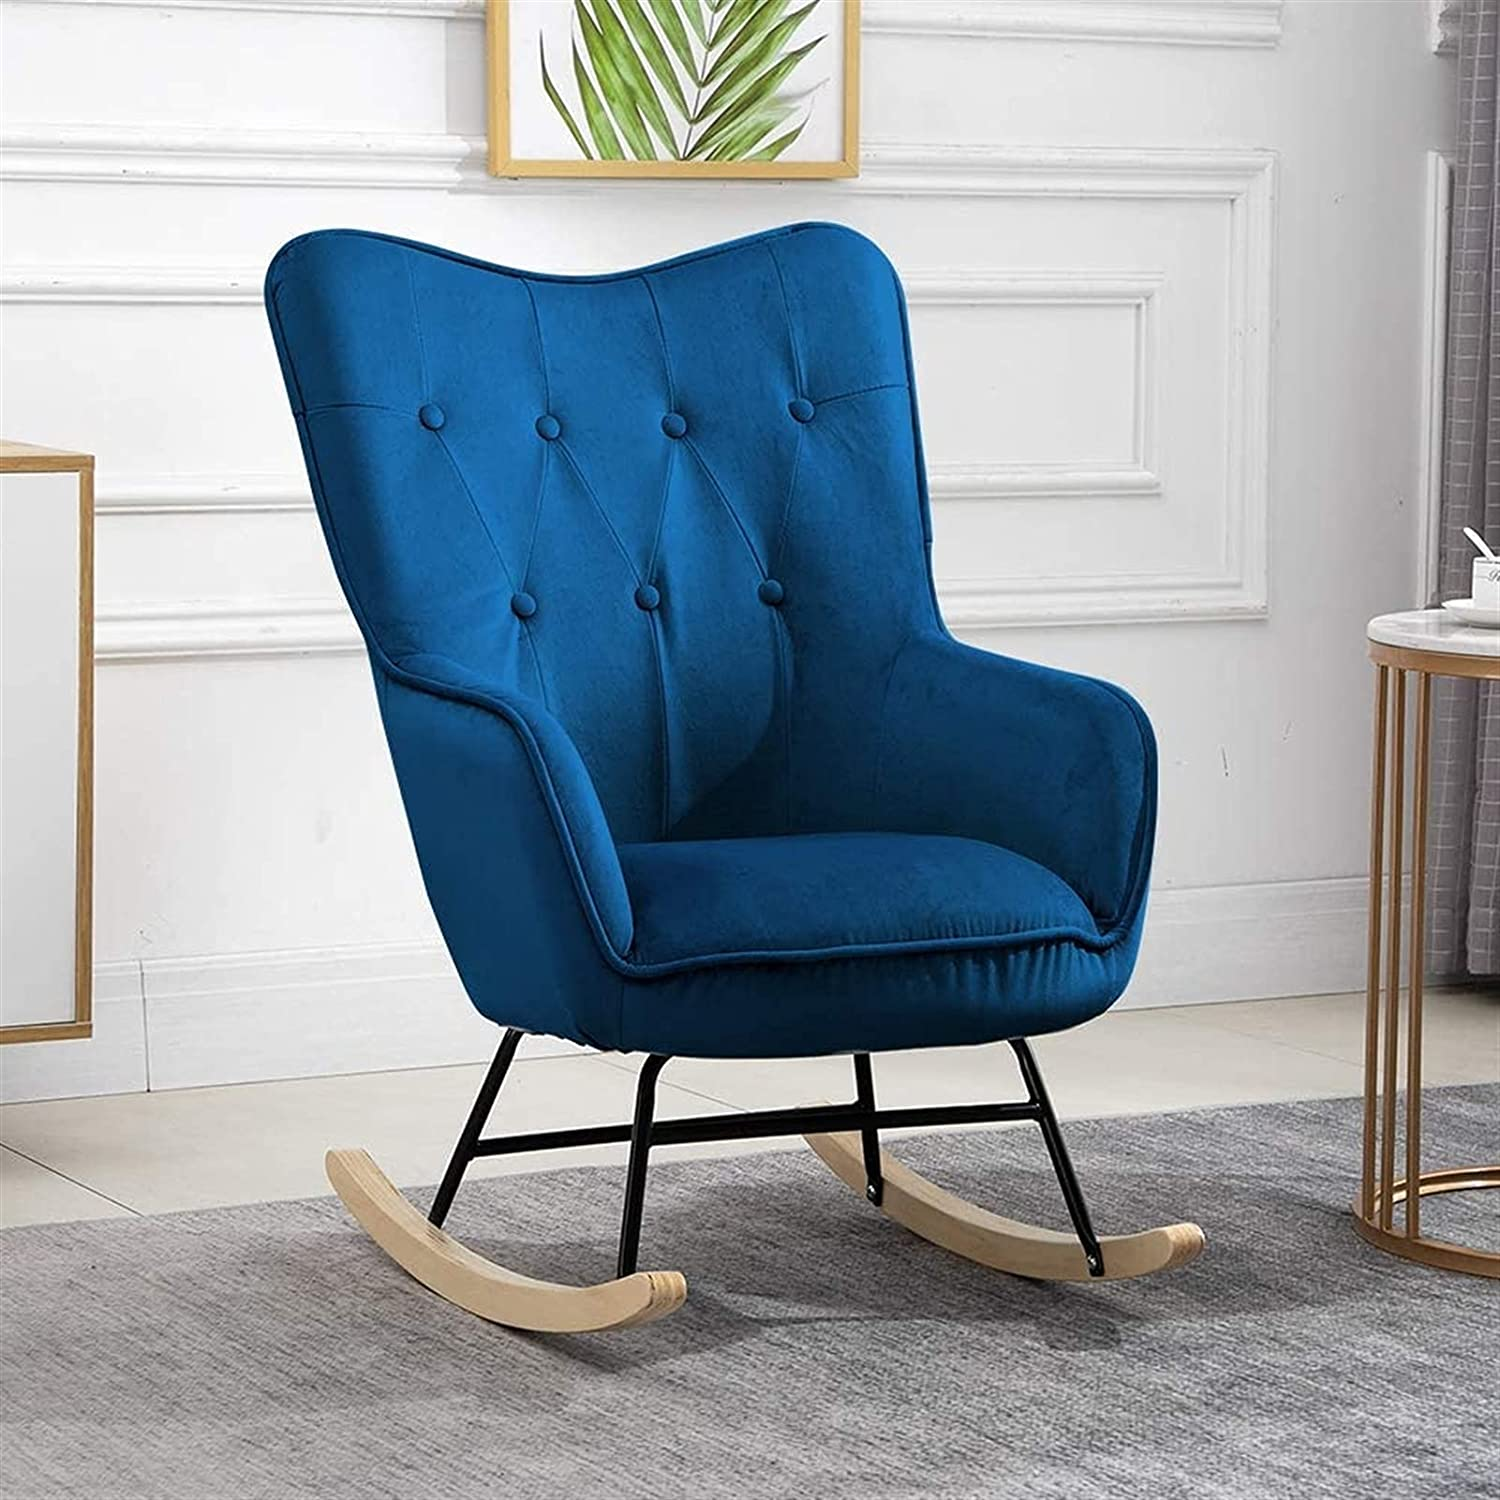 Relax Omaha Mall Rocking Opening large release sale Chair with Armchair Upholstered,Fireside Rocker